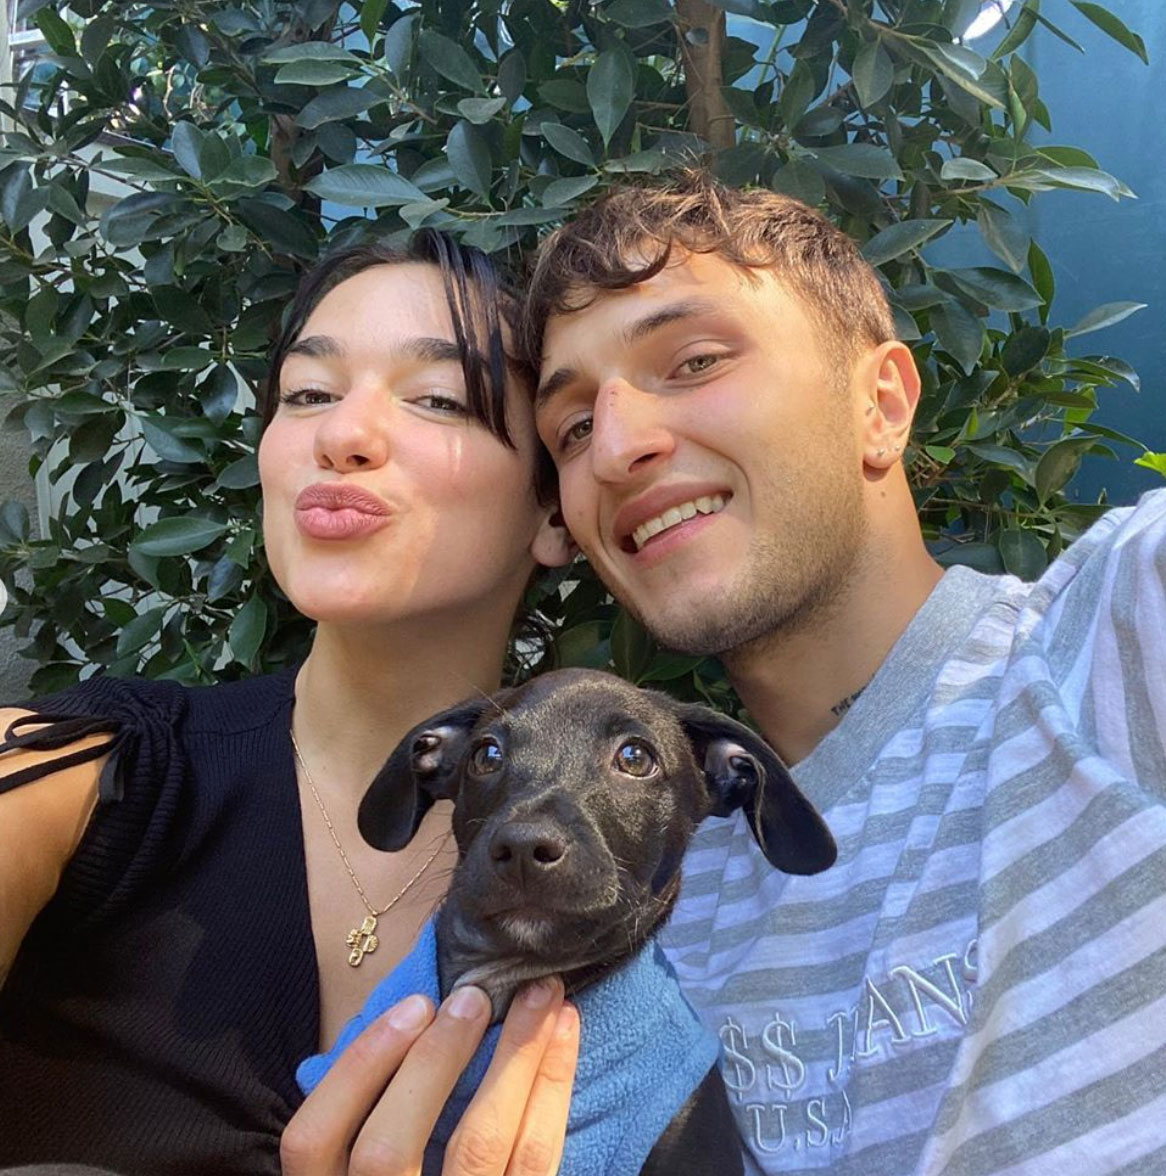 Dua Lipa's new dog